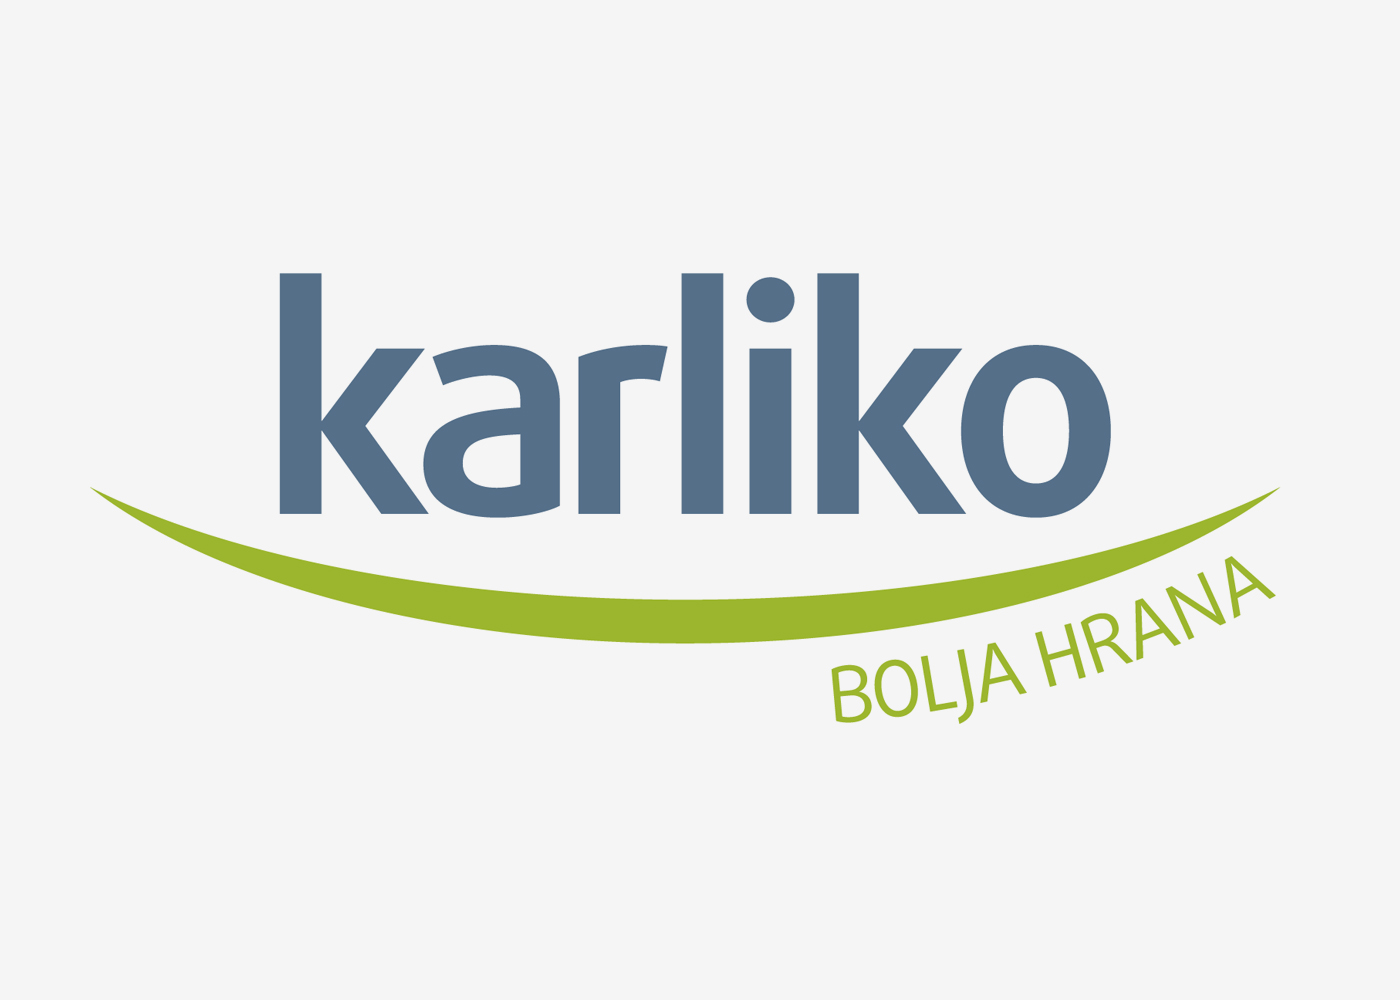 New visual identity - Karliko